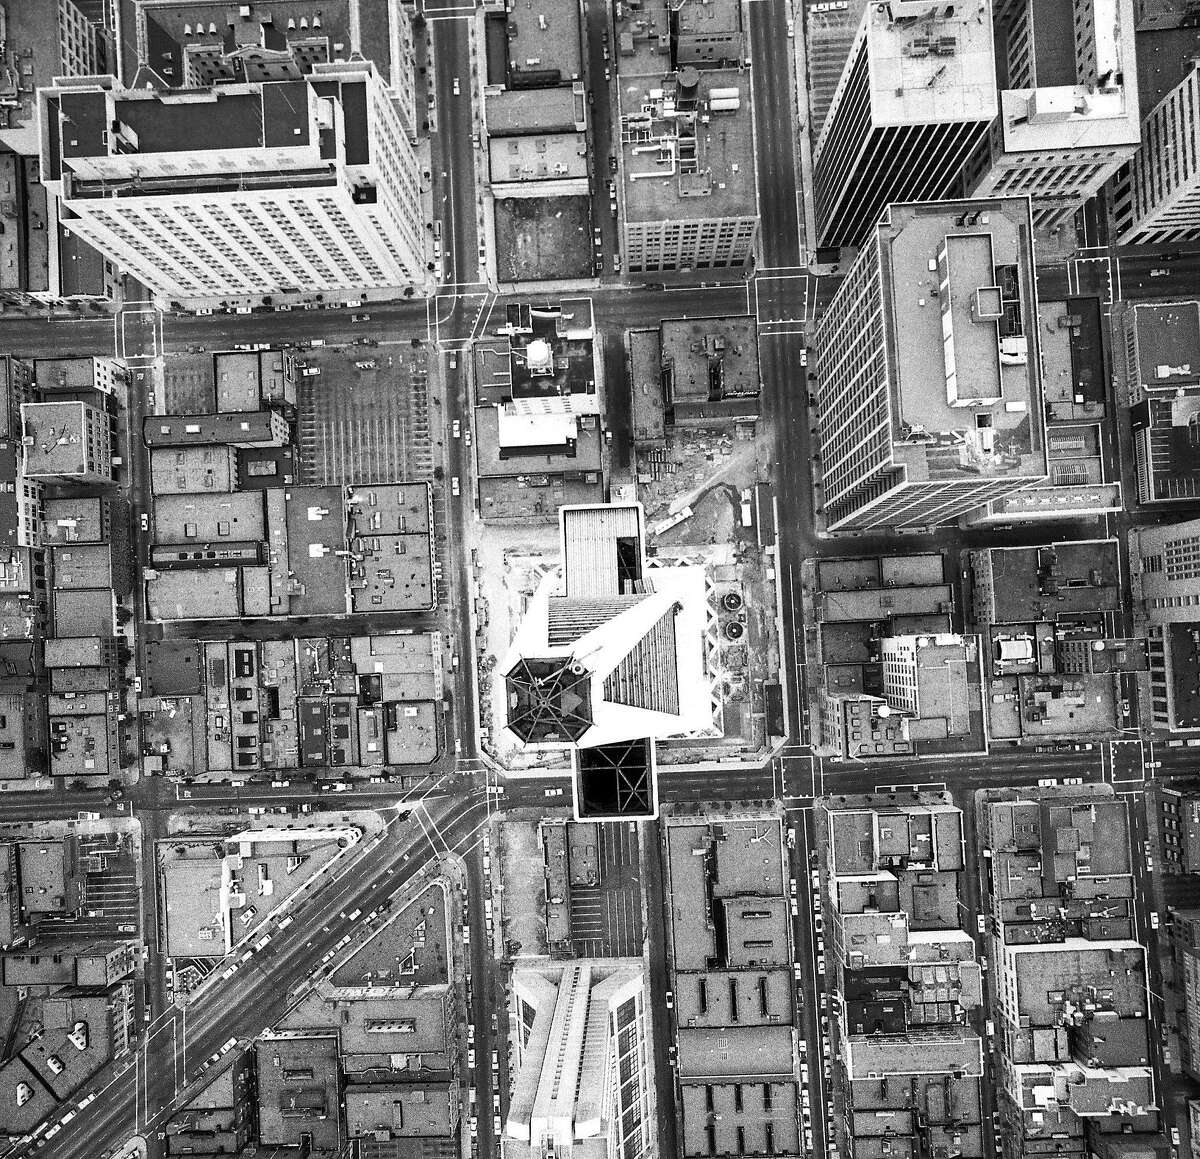 Aerial view of the Transamerica Pyramid Building taken from a helicopter about 150 feet above the building Photos shot 05/17/1972